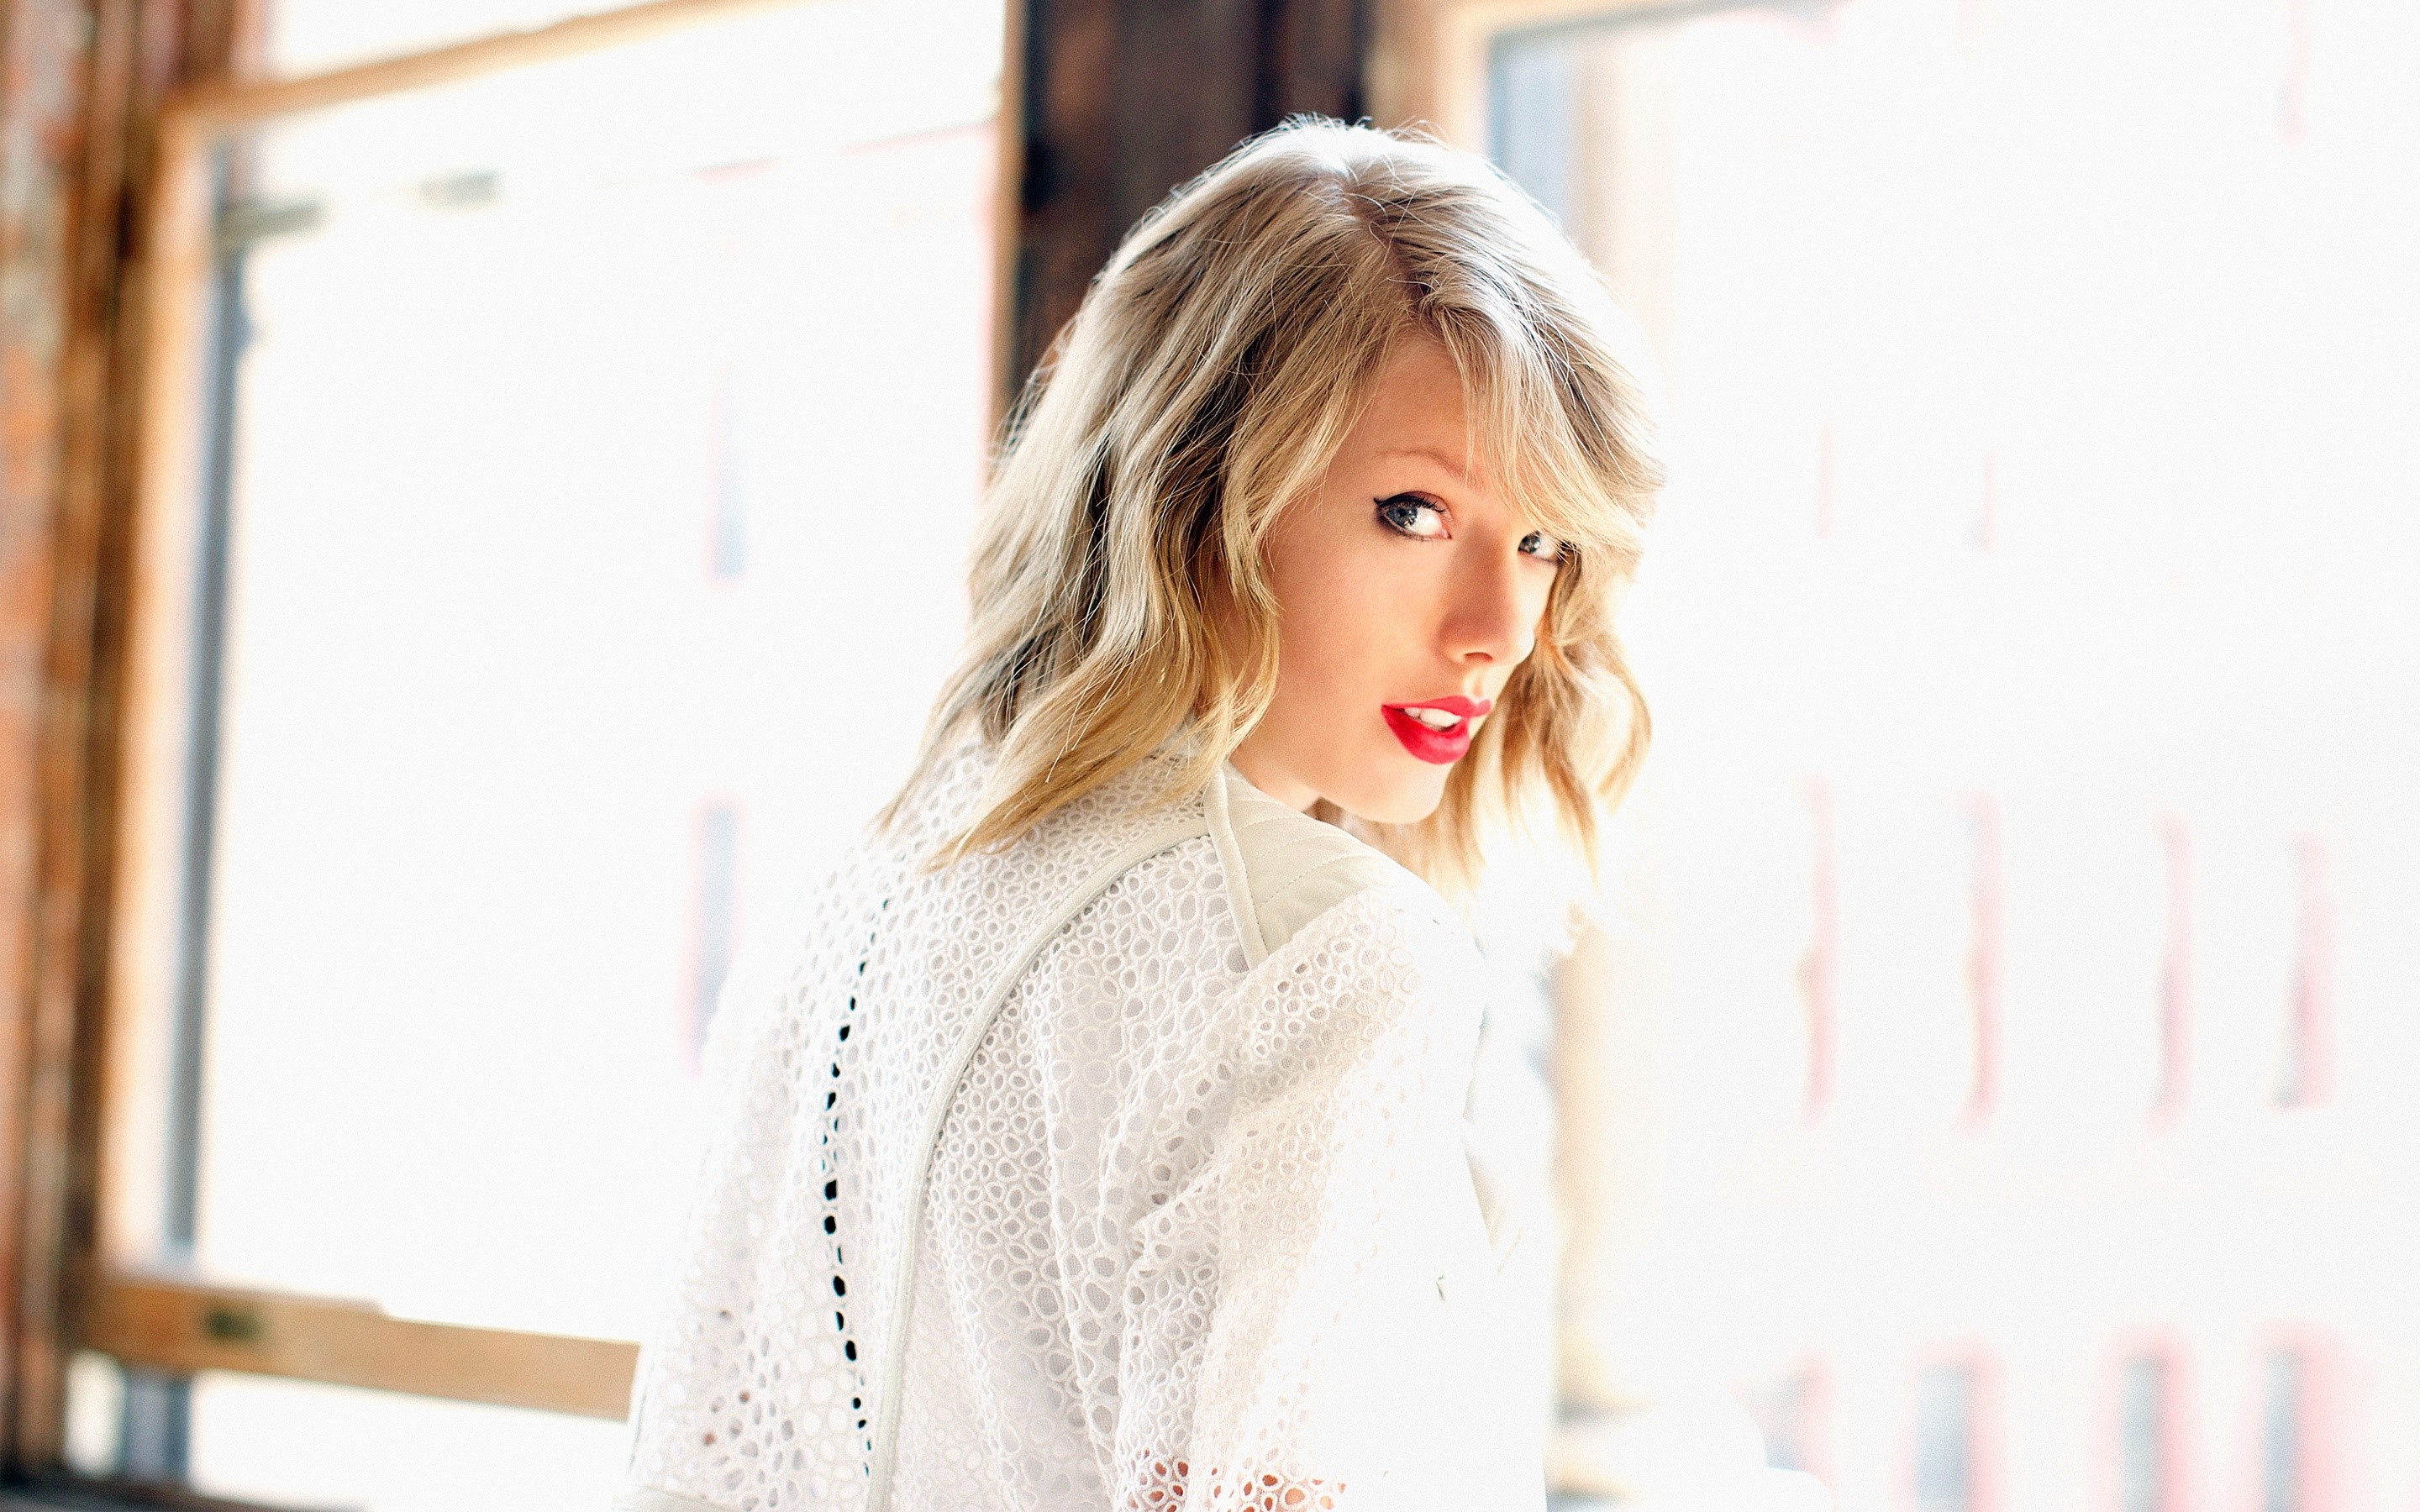 Wallpaper Taylor Swift in a room